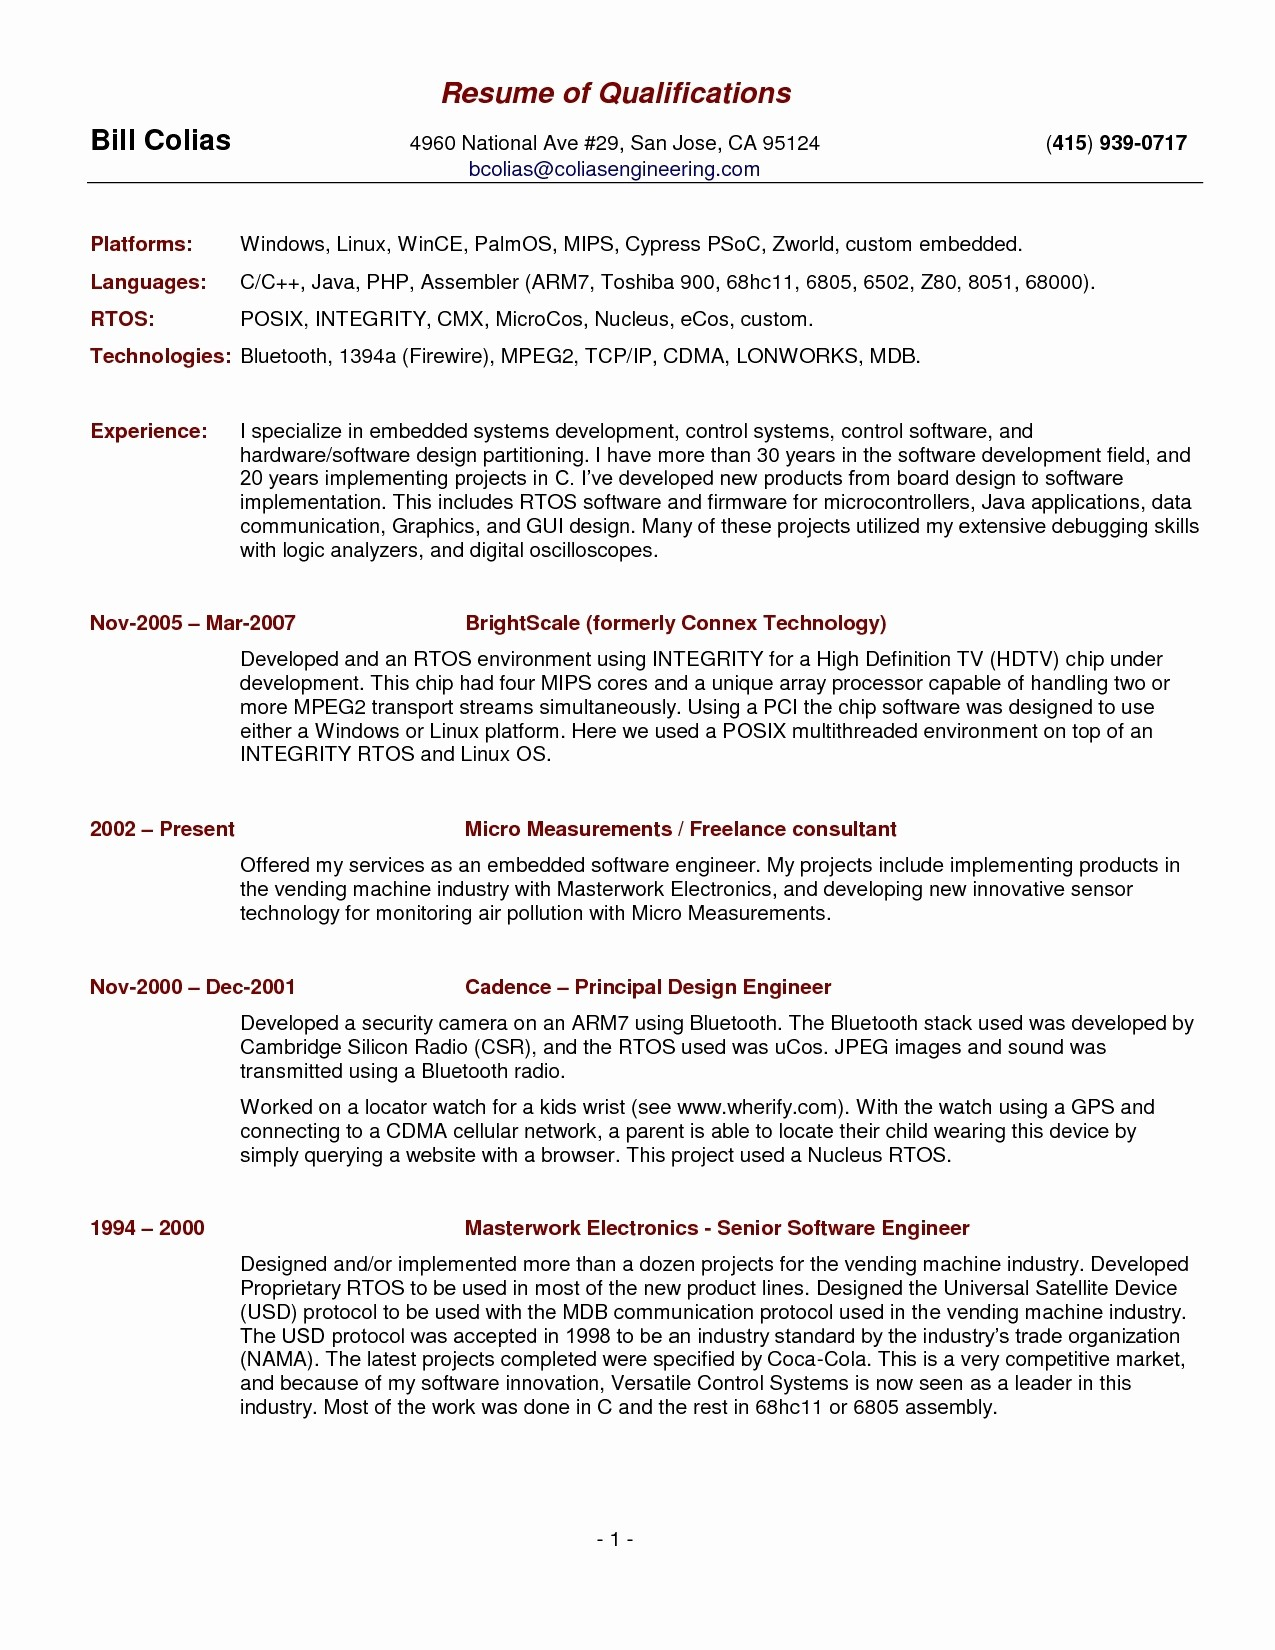 Resume Template Engineer - Download Unique Best Resume Template